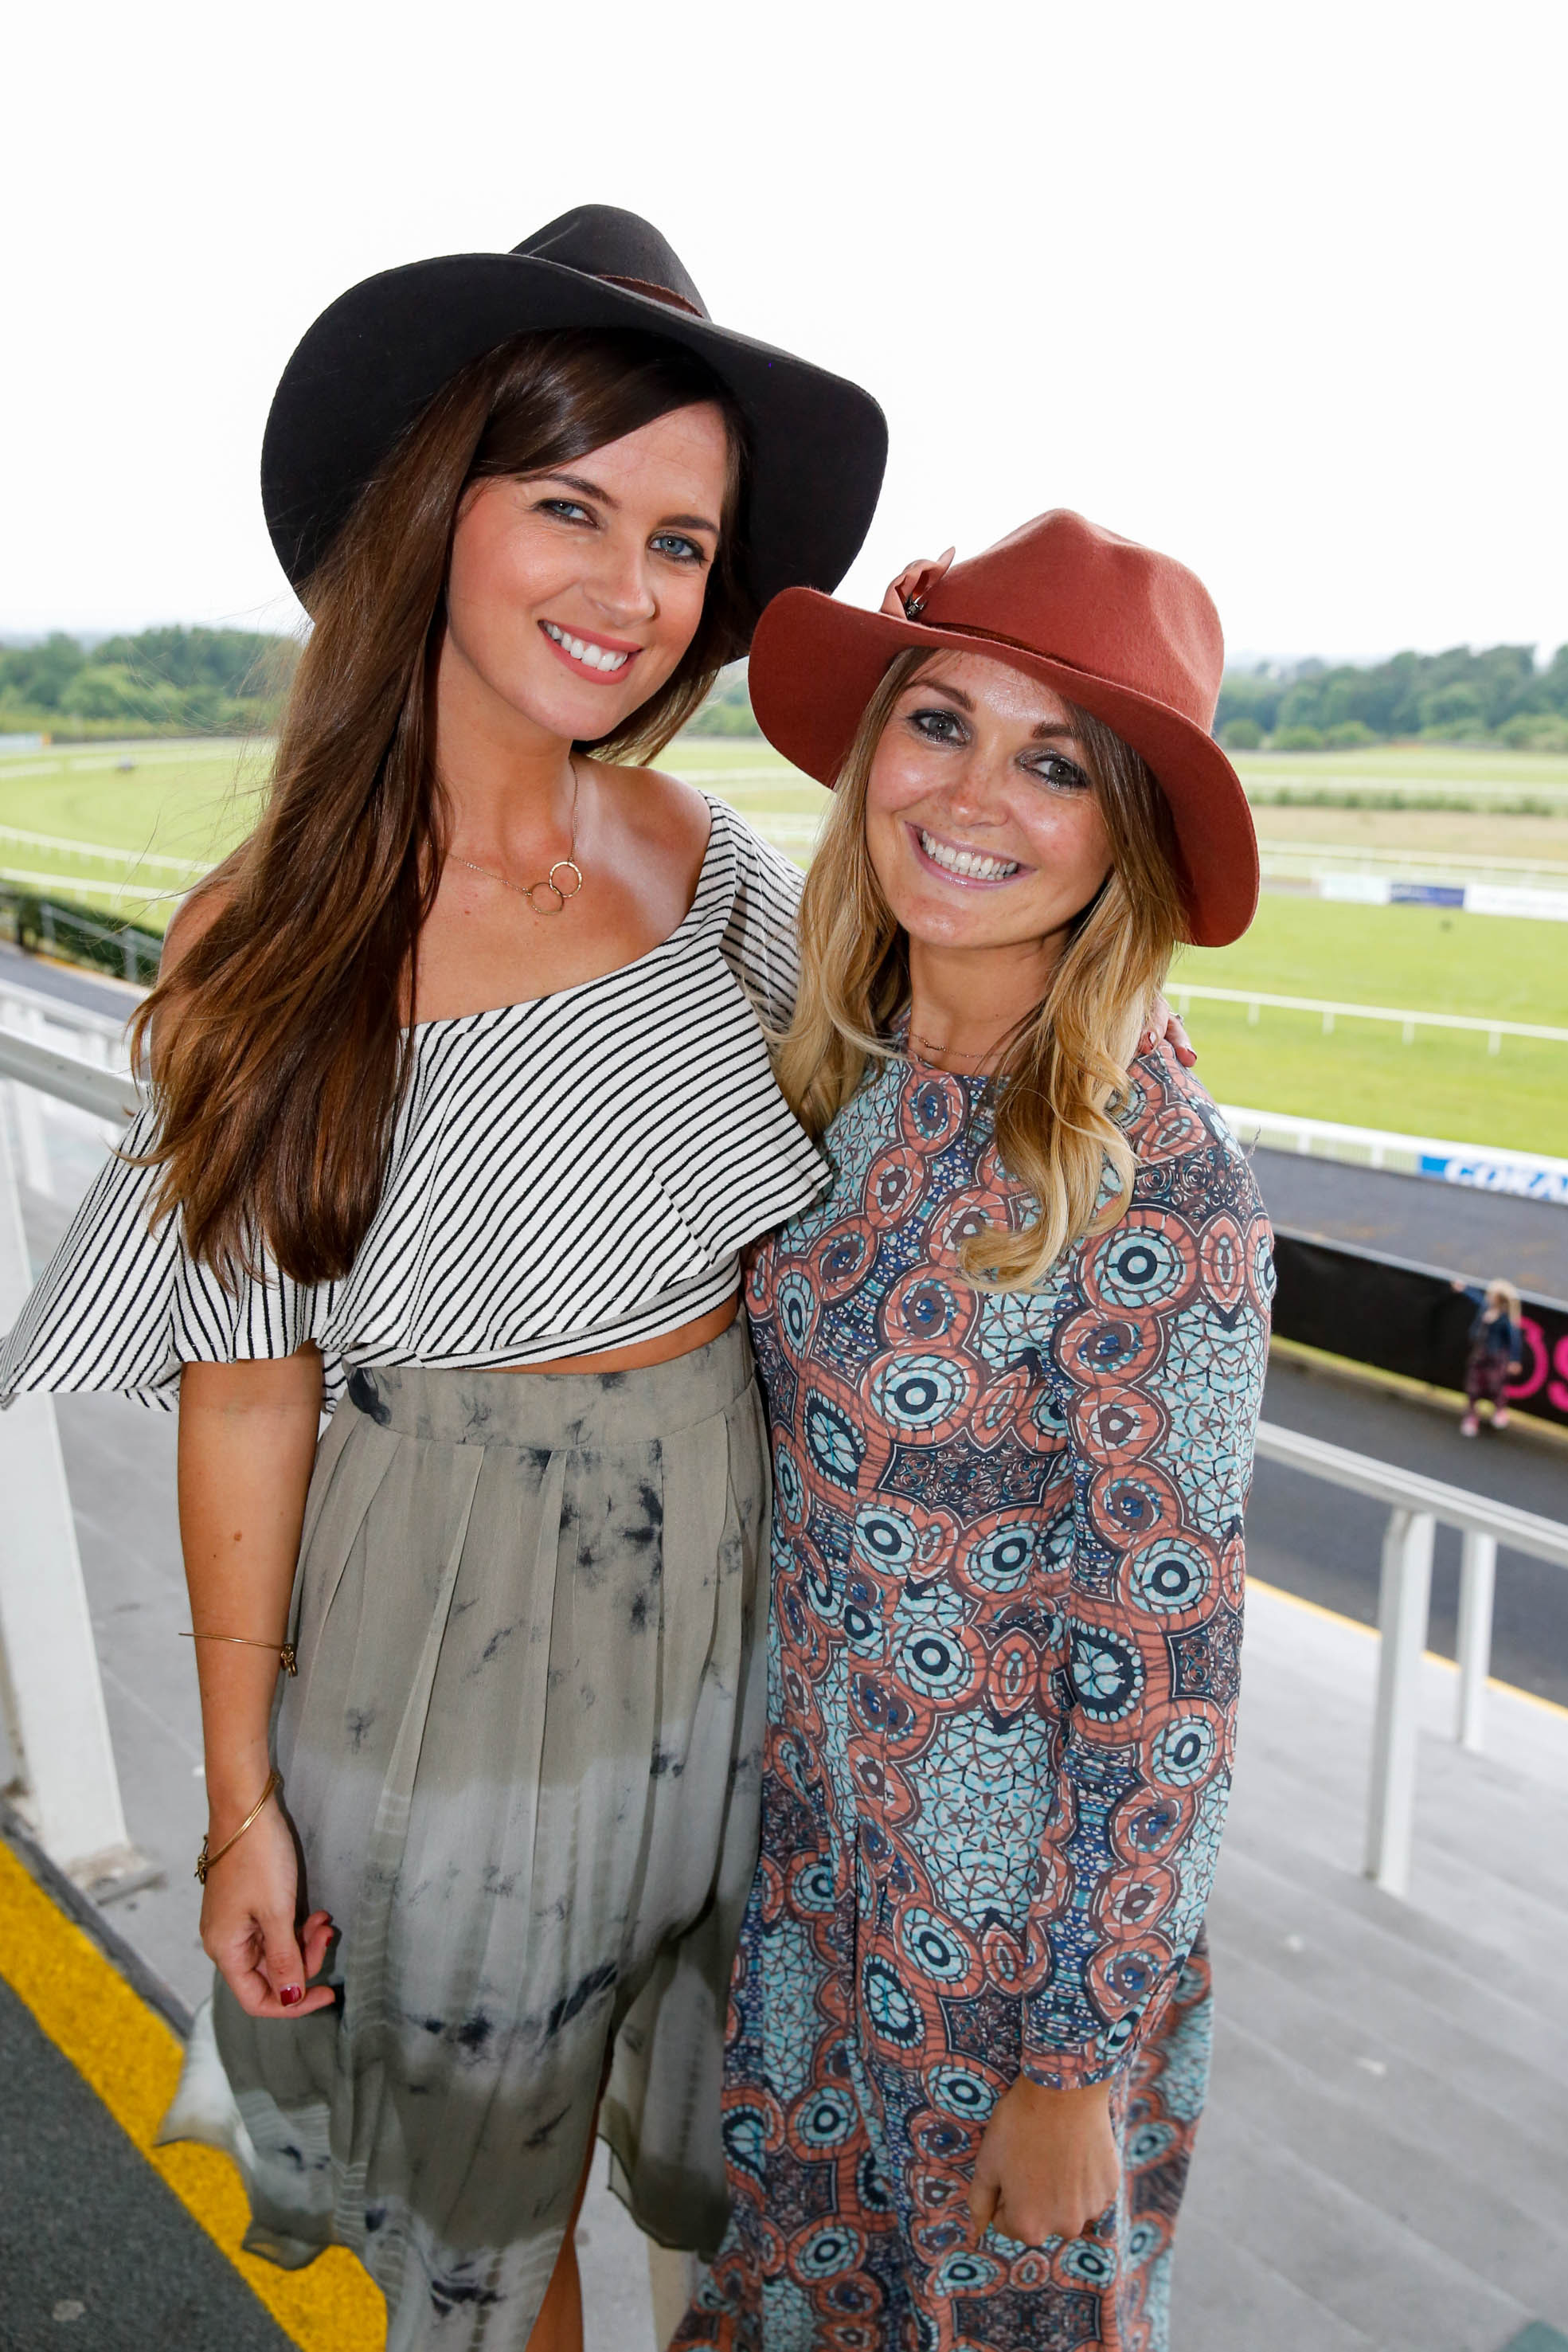 11-6-16 coral.ie Race Day at Limerick Racecourse.Louise James, Dublin and Breda Fitzgerald, Abbeyfeale.Picture: Keith Wiseman